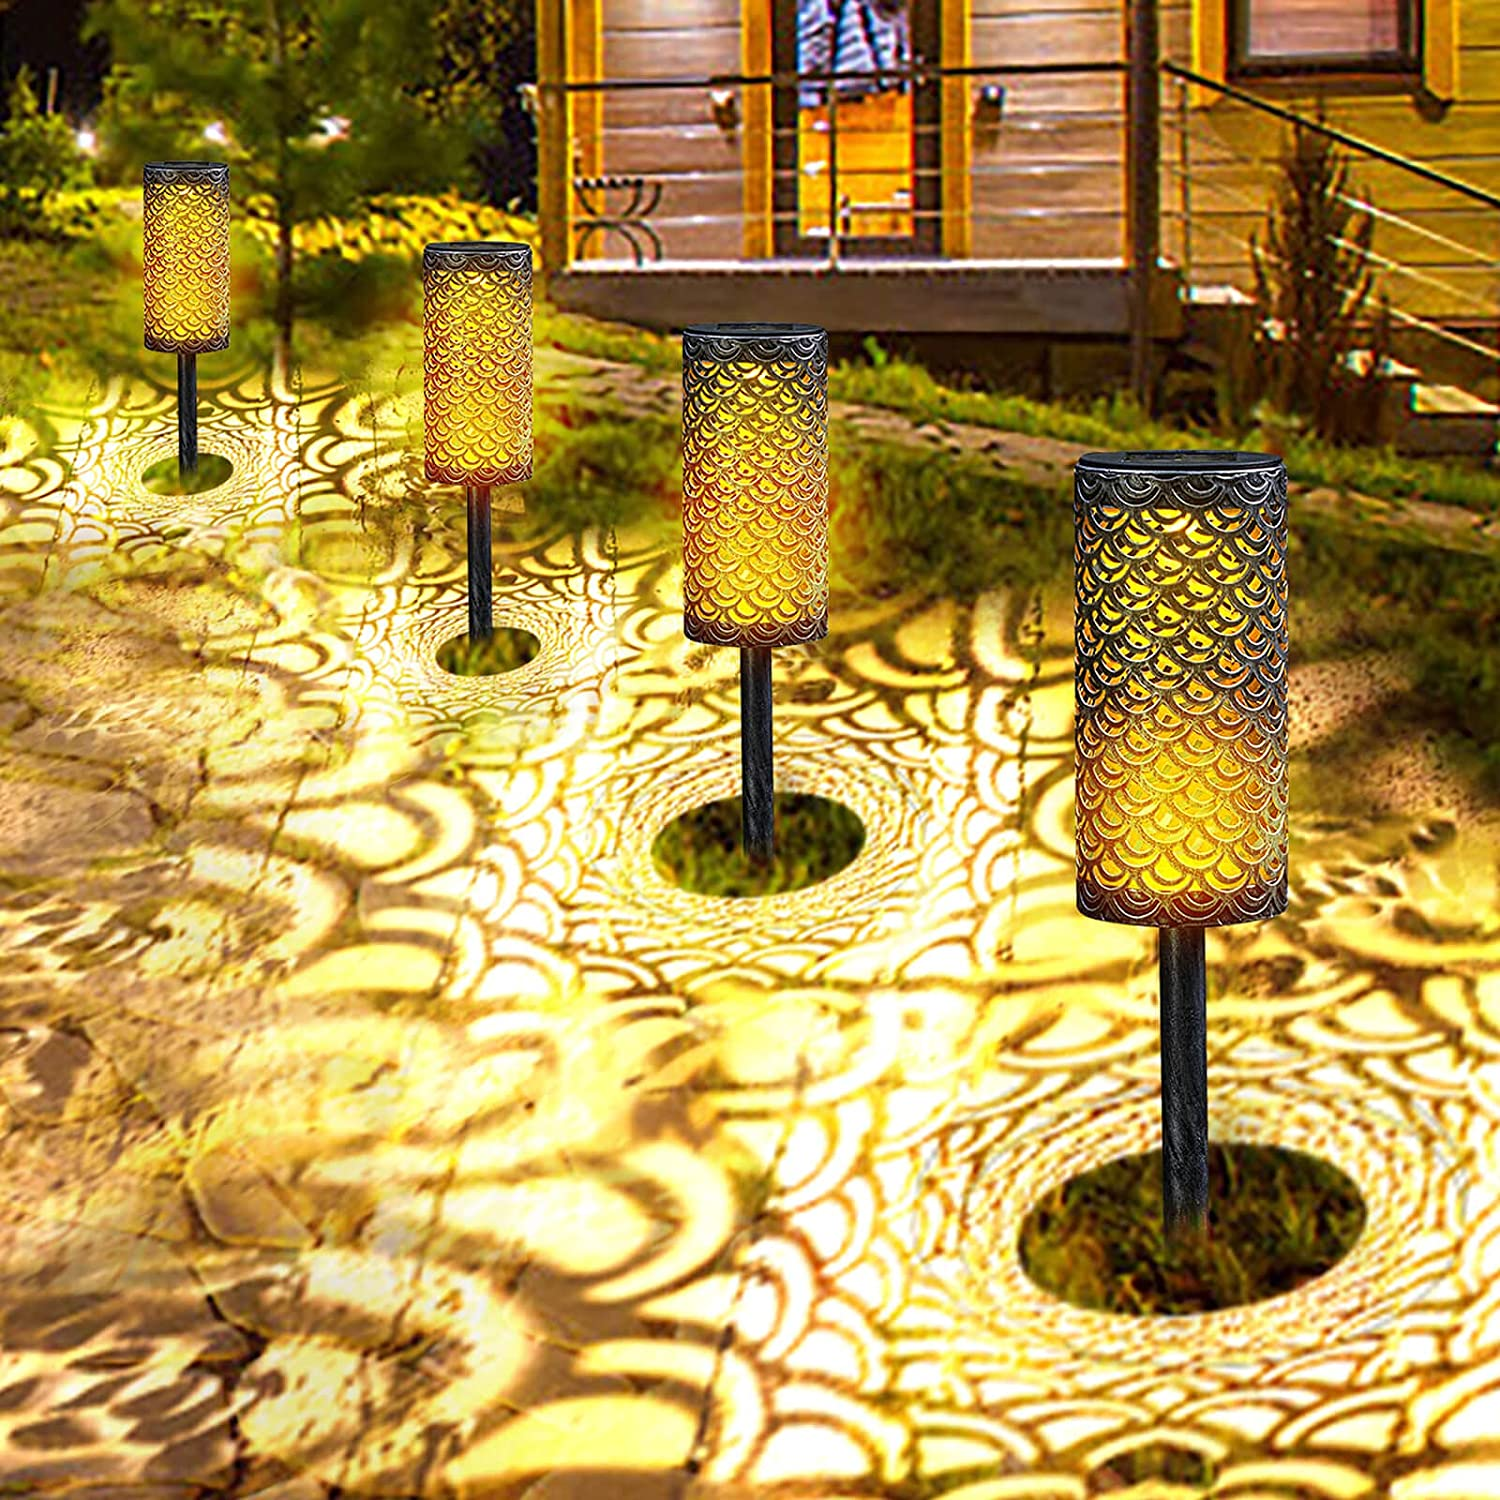 Solar Pathway Garden Lights Metal - Outdoor Decorative Path Light, Waterproof LED Auto On/Off Landscape Lighting for Lawn, Yard, Patio, Walkway (4 Pack)